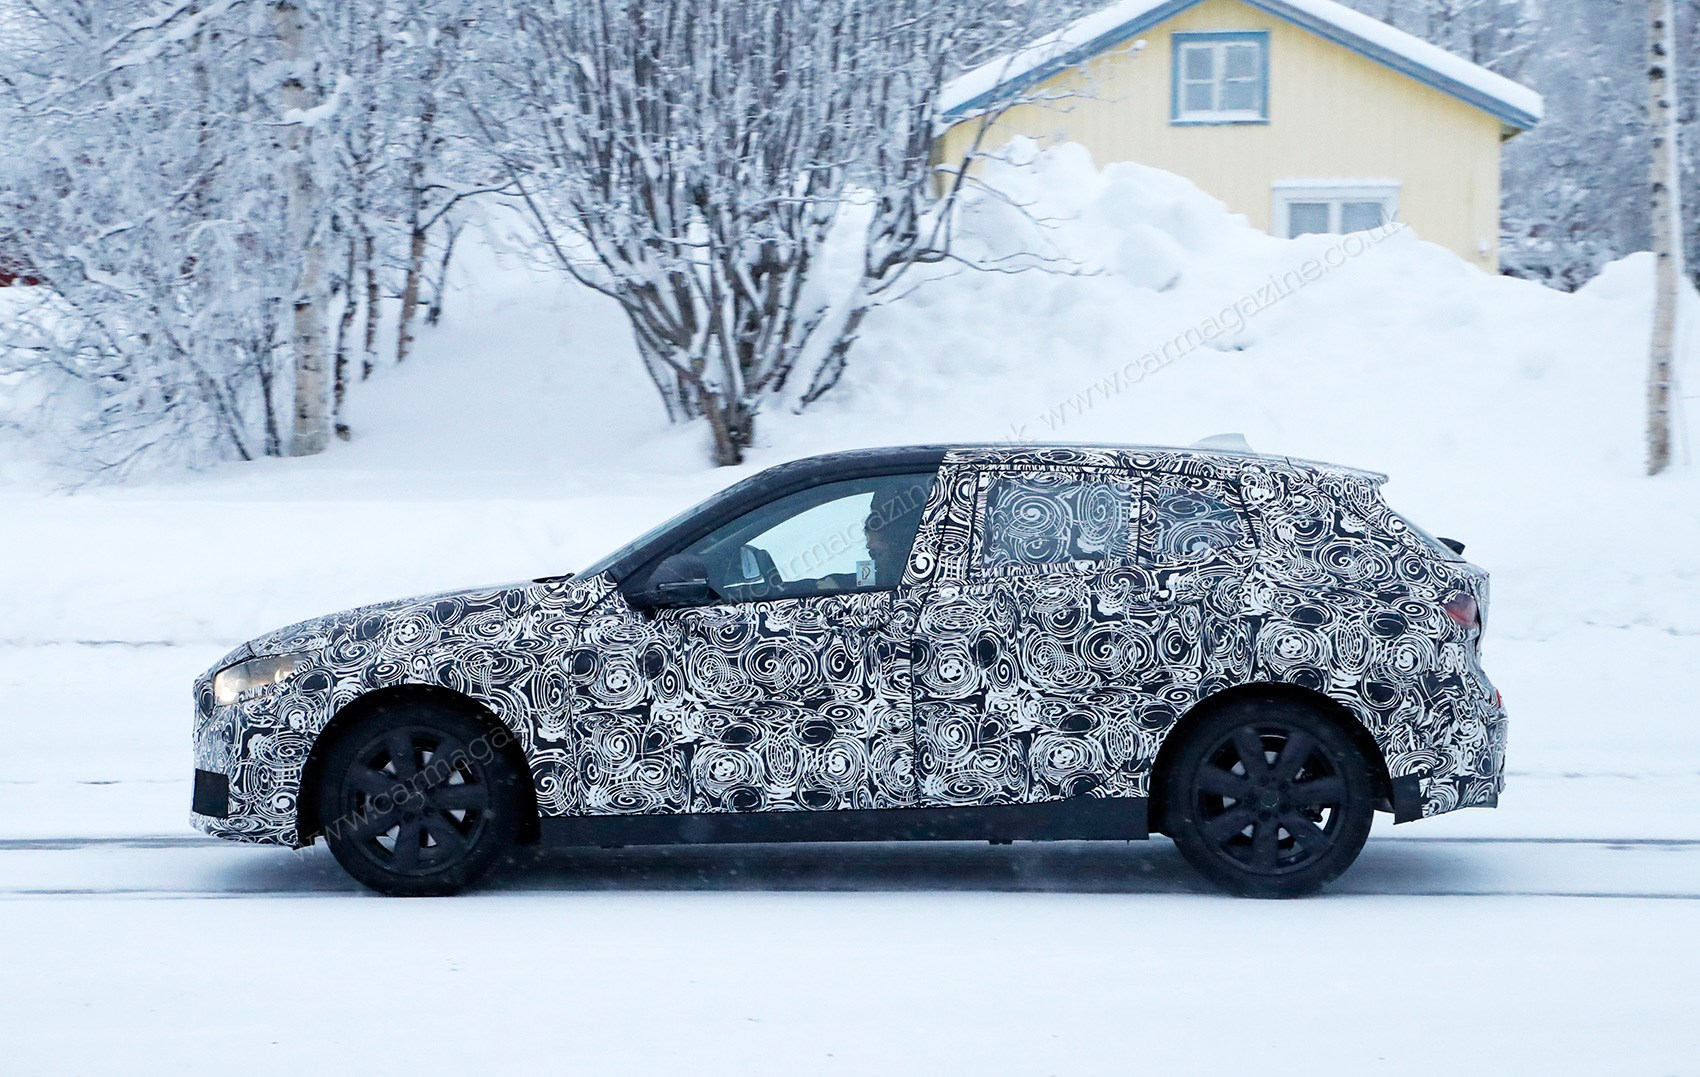 new front wheel drive bmw 1 series spied winter testing by car magazine. Black Bedroom Furniture Sets. Home Design Ideas